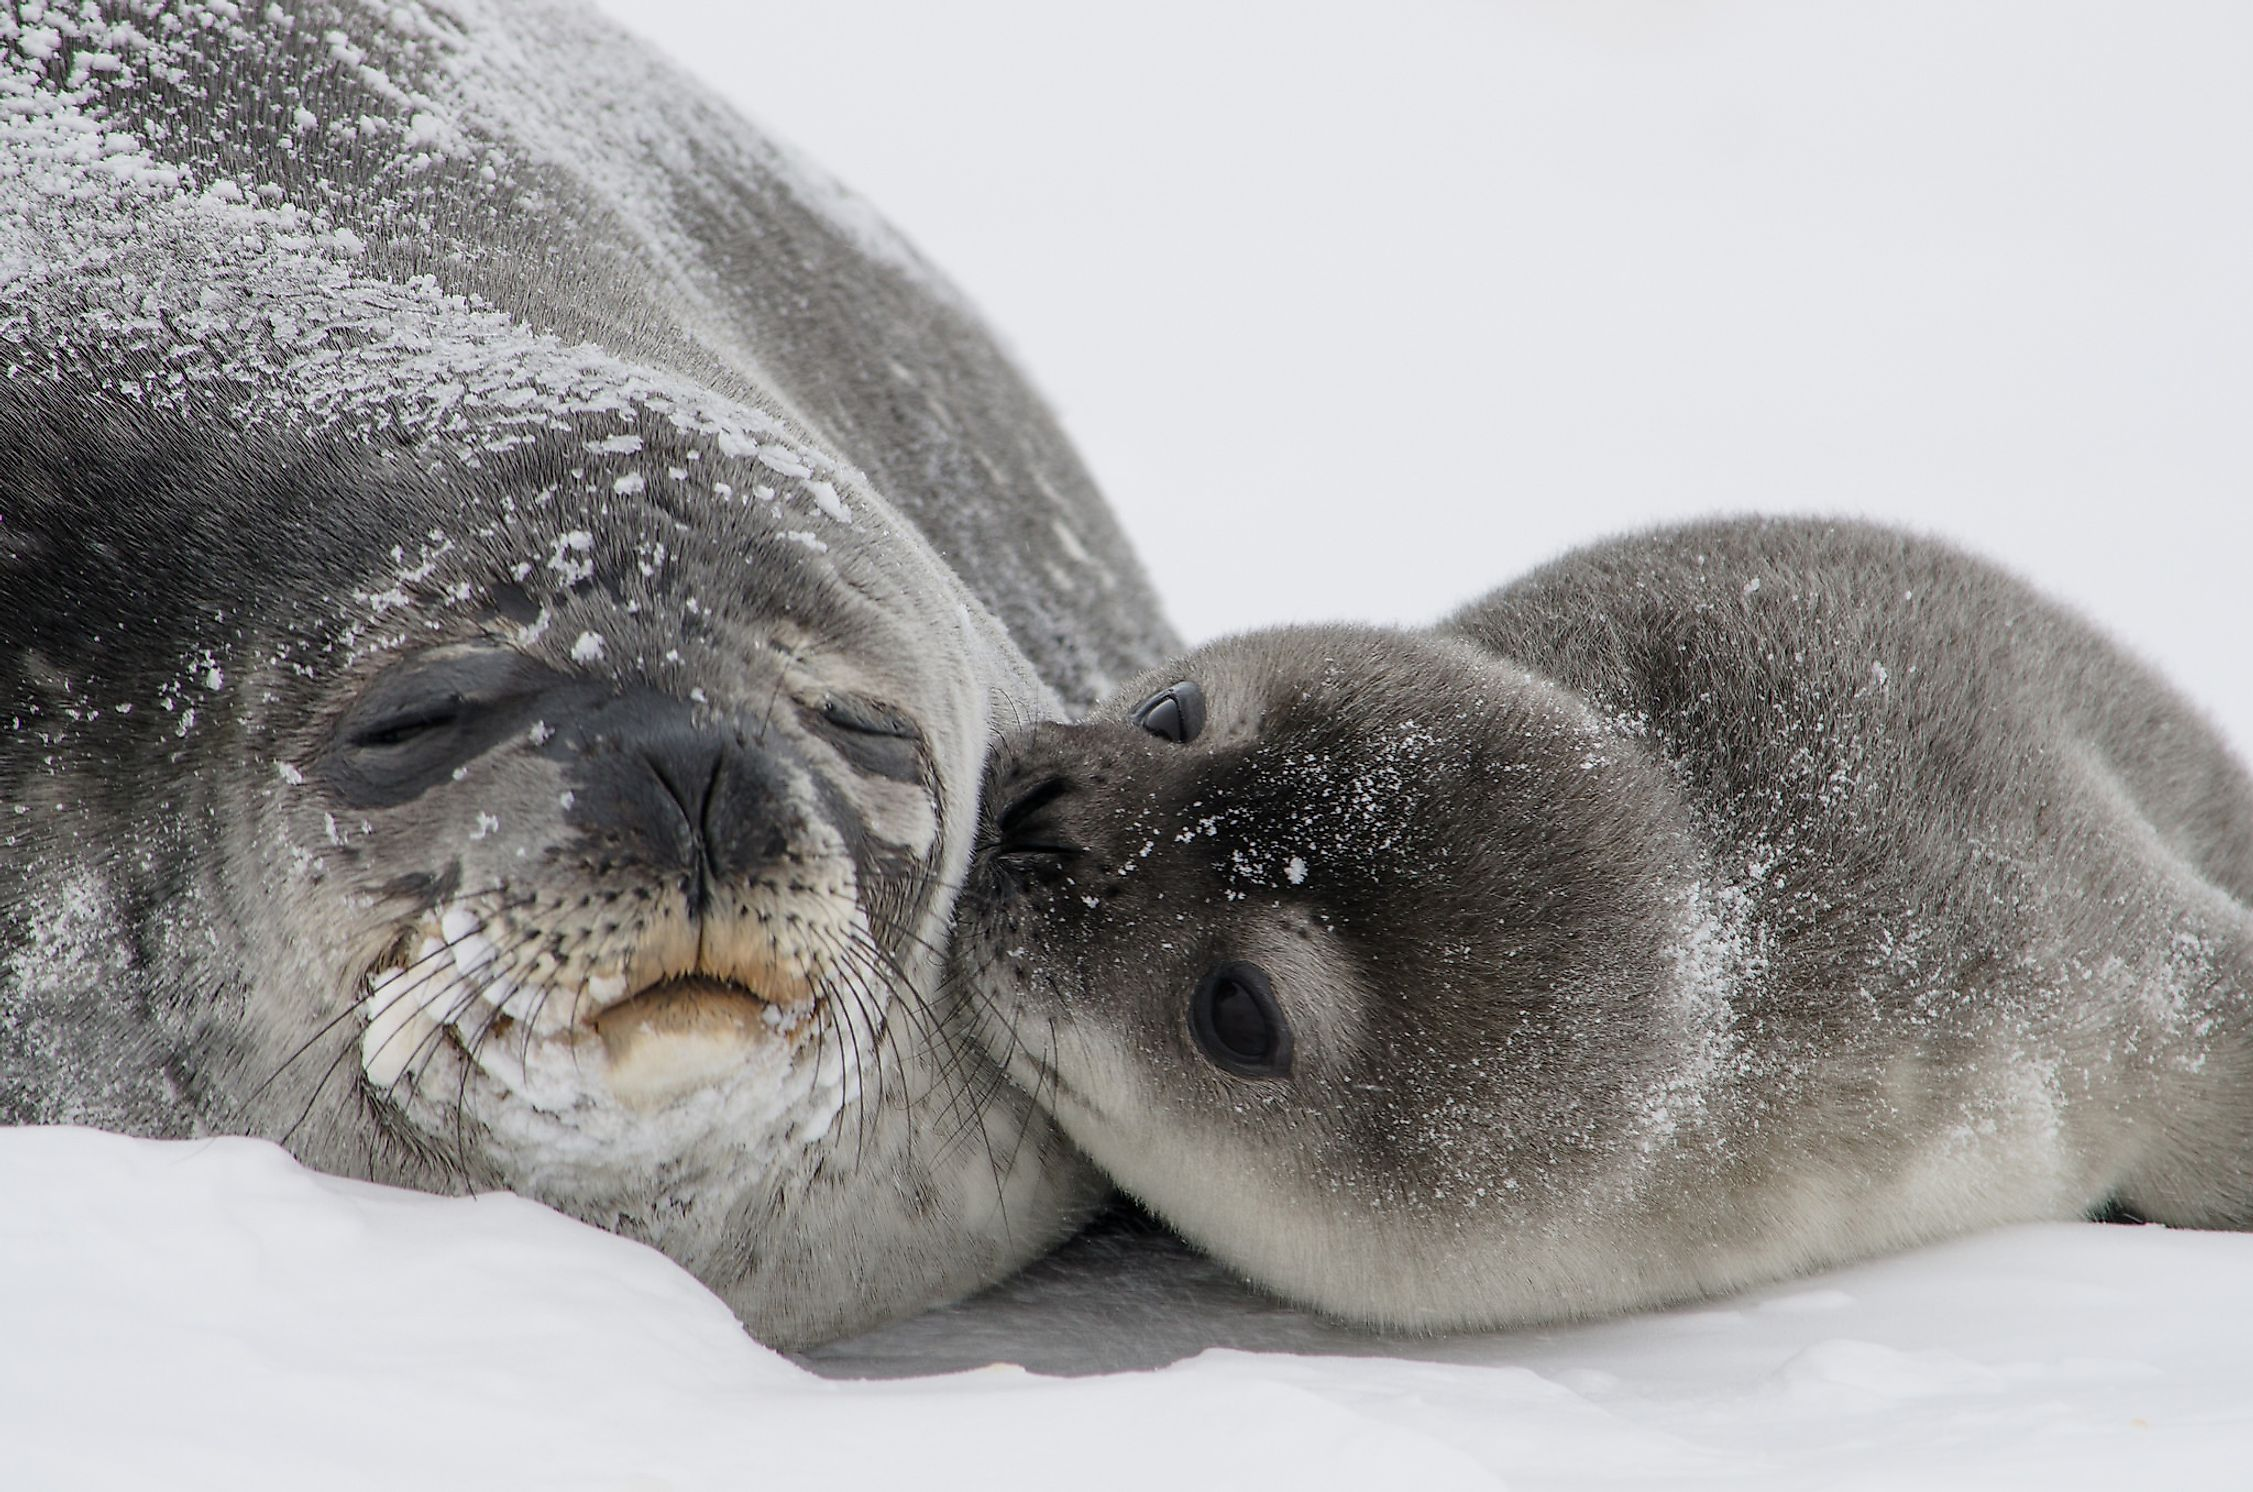 Weddell Seals are highly social animals. They prefer to travel in packs and, when not migrating in search of food, they mostly sleep.